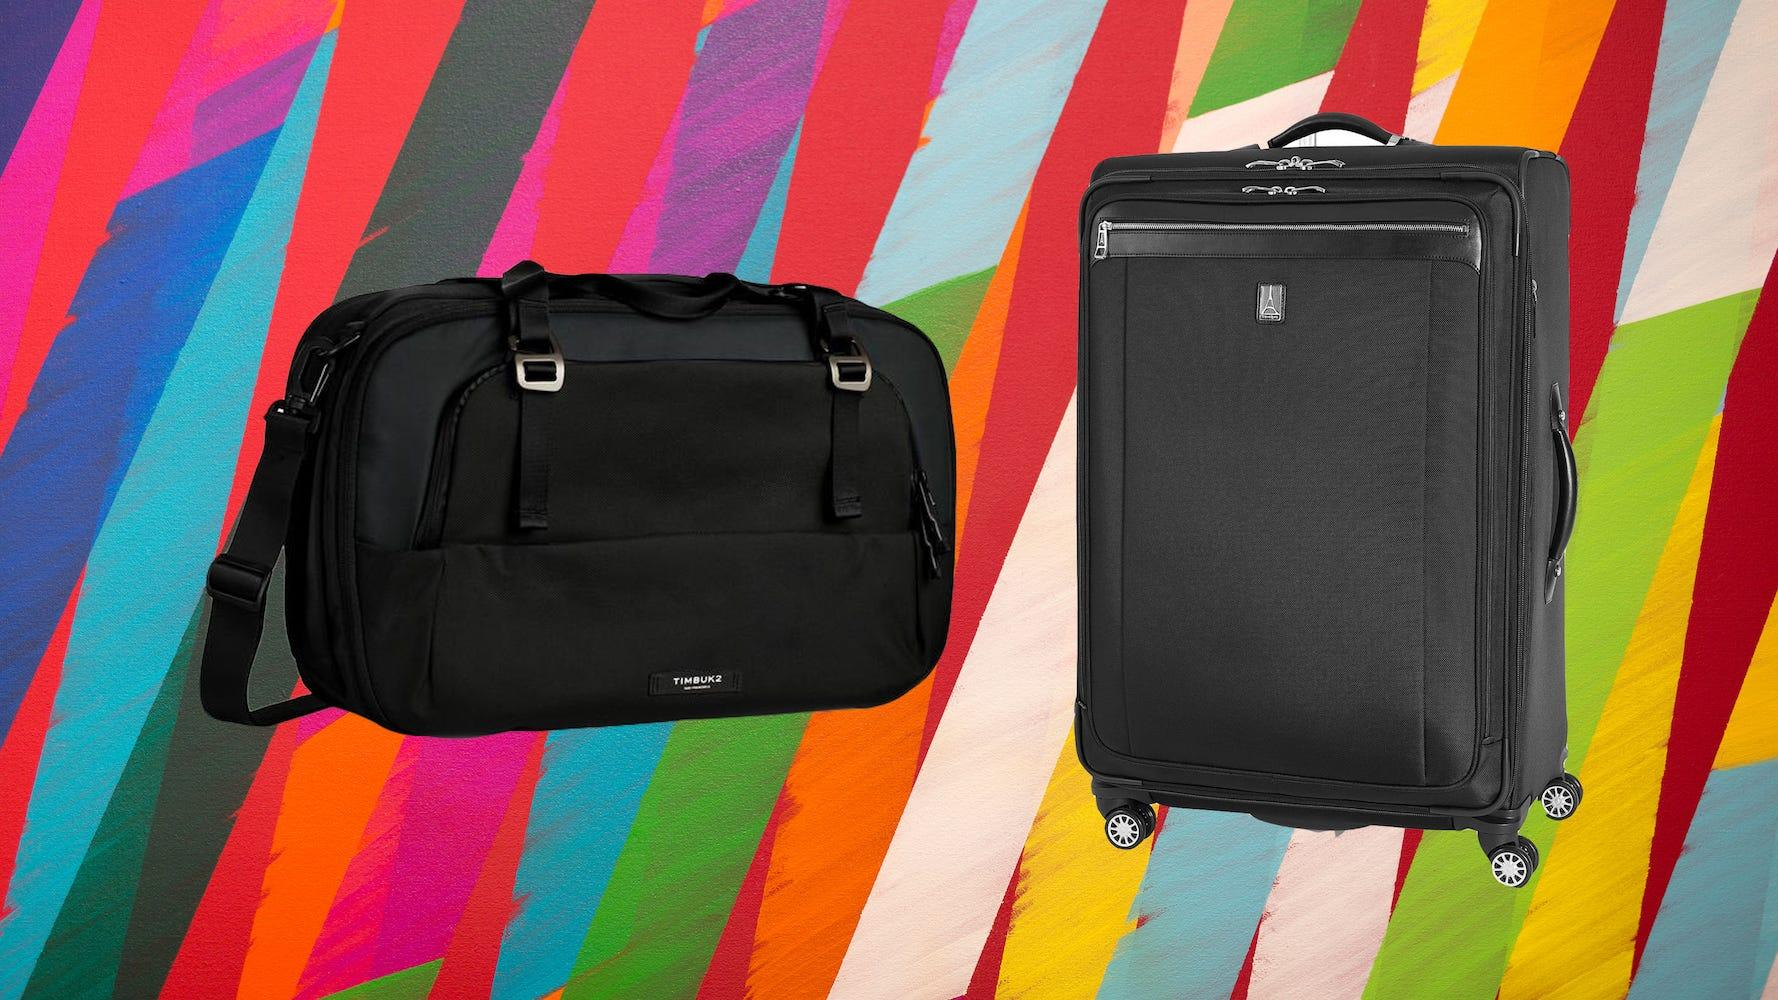 Get top-rated bags and luggage sets on sale at Macy's, Amazon and more thumbnail